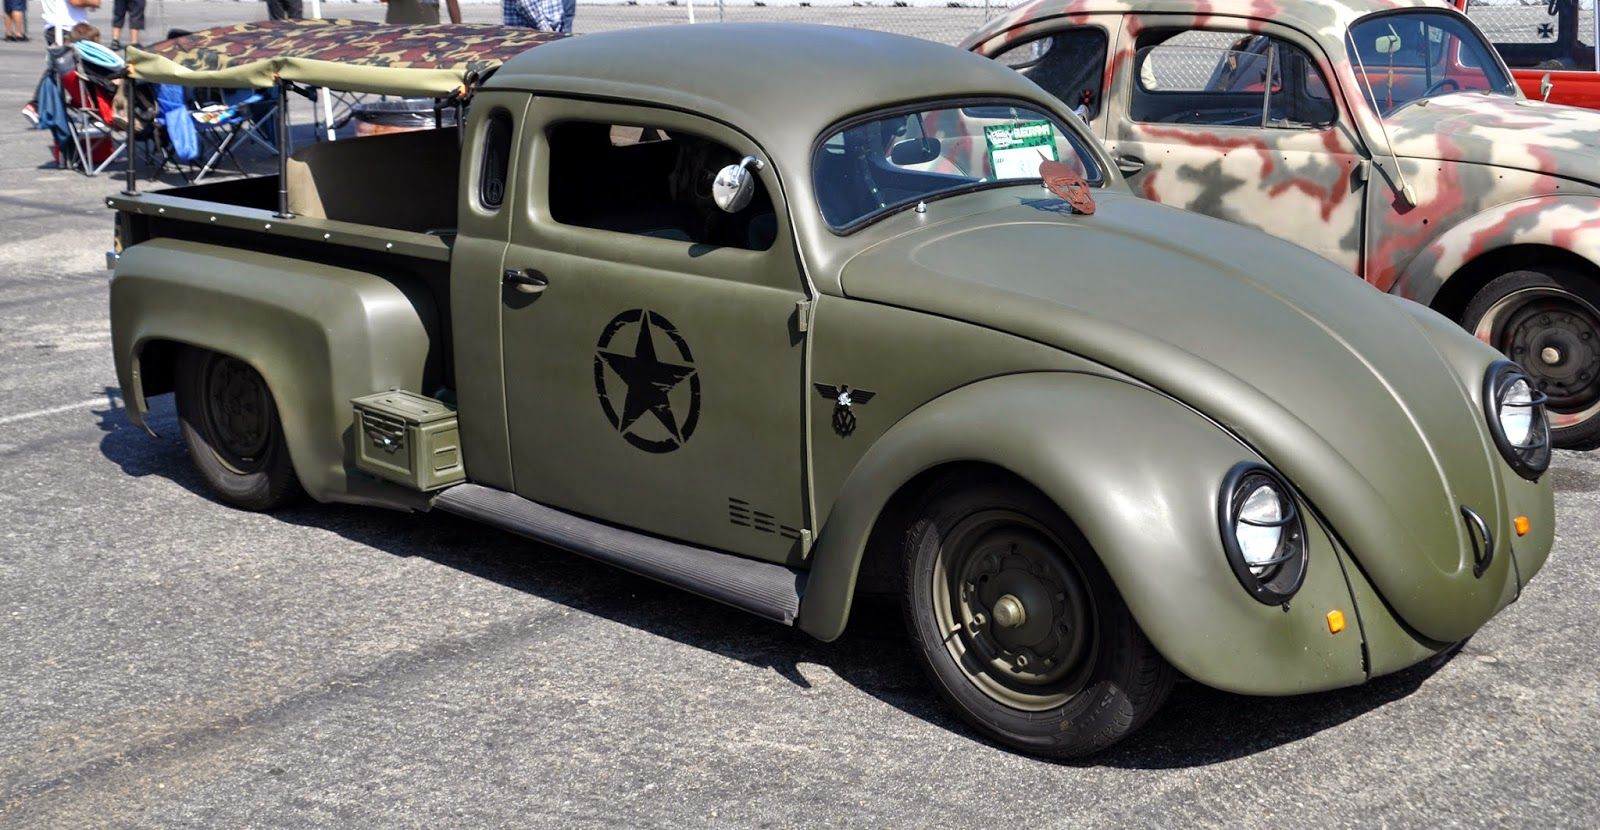 Just a car guy : interesting bug/truck creation with a military motif